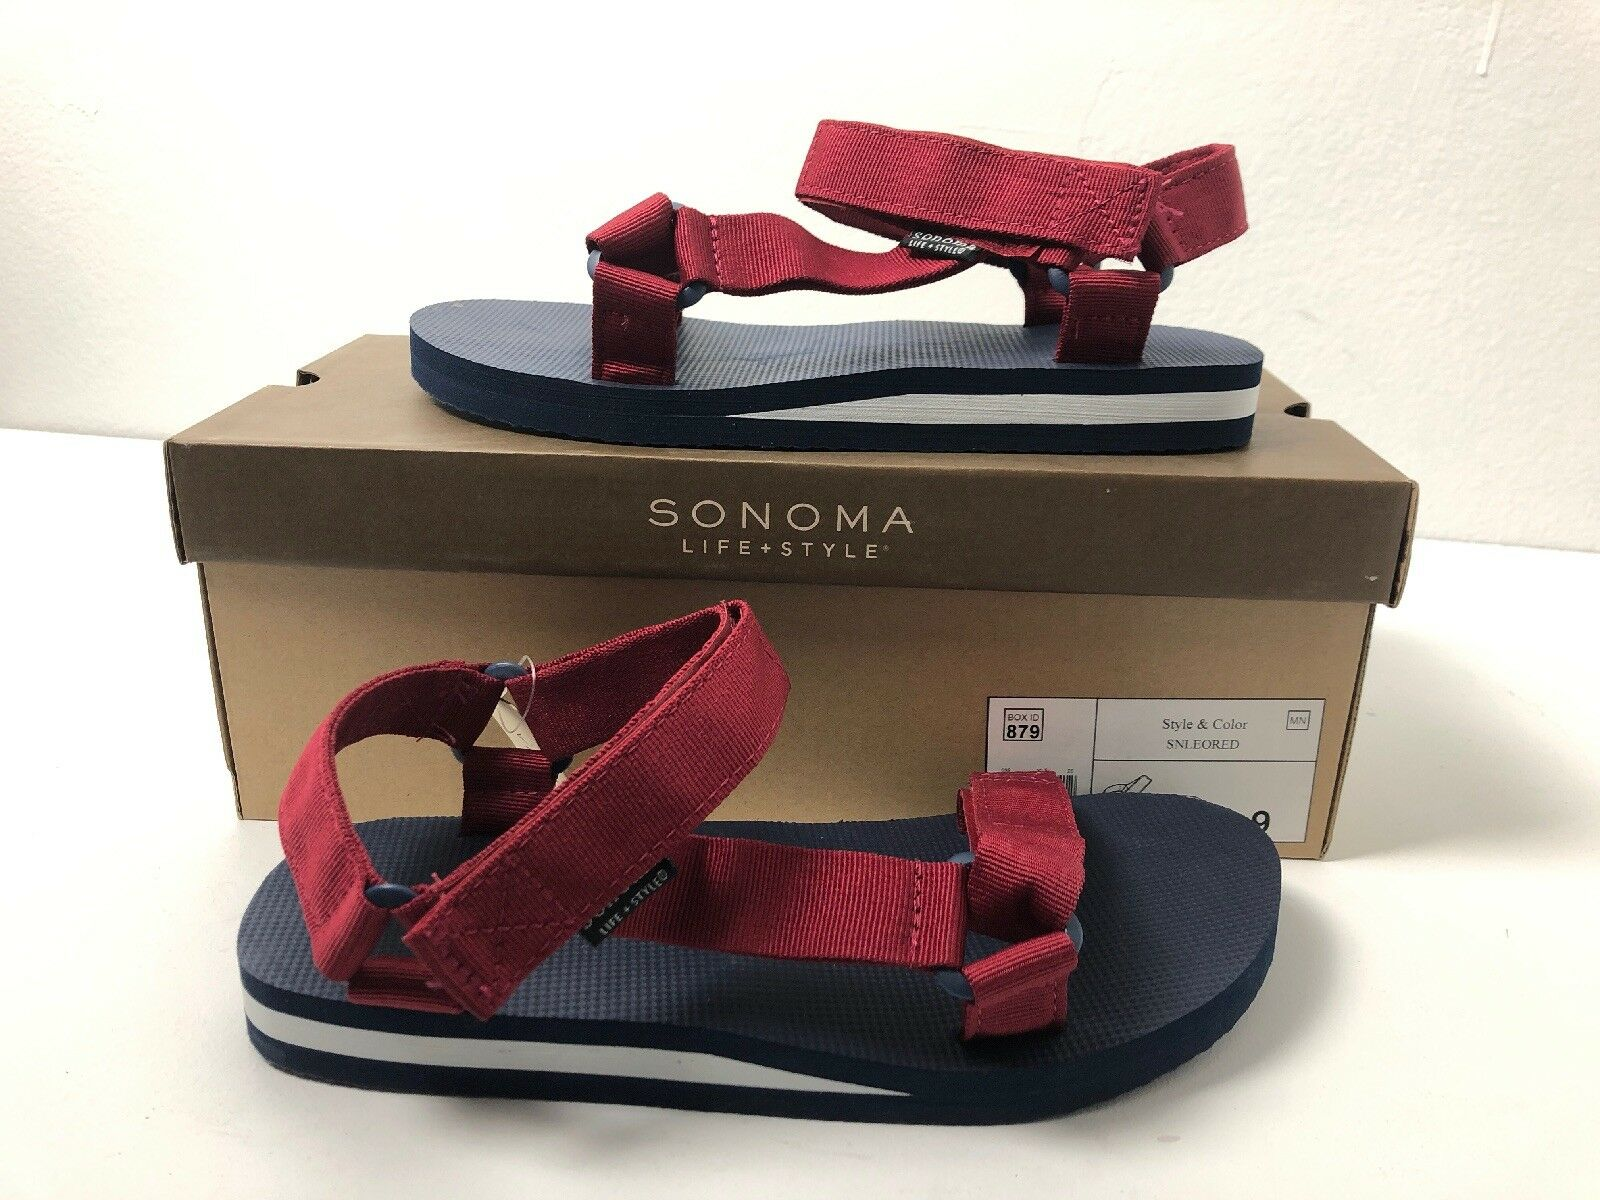 Sonoma Life + Style Mens Sandals bluee Red Sz. 9